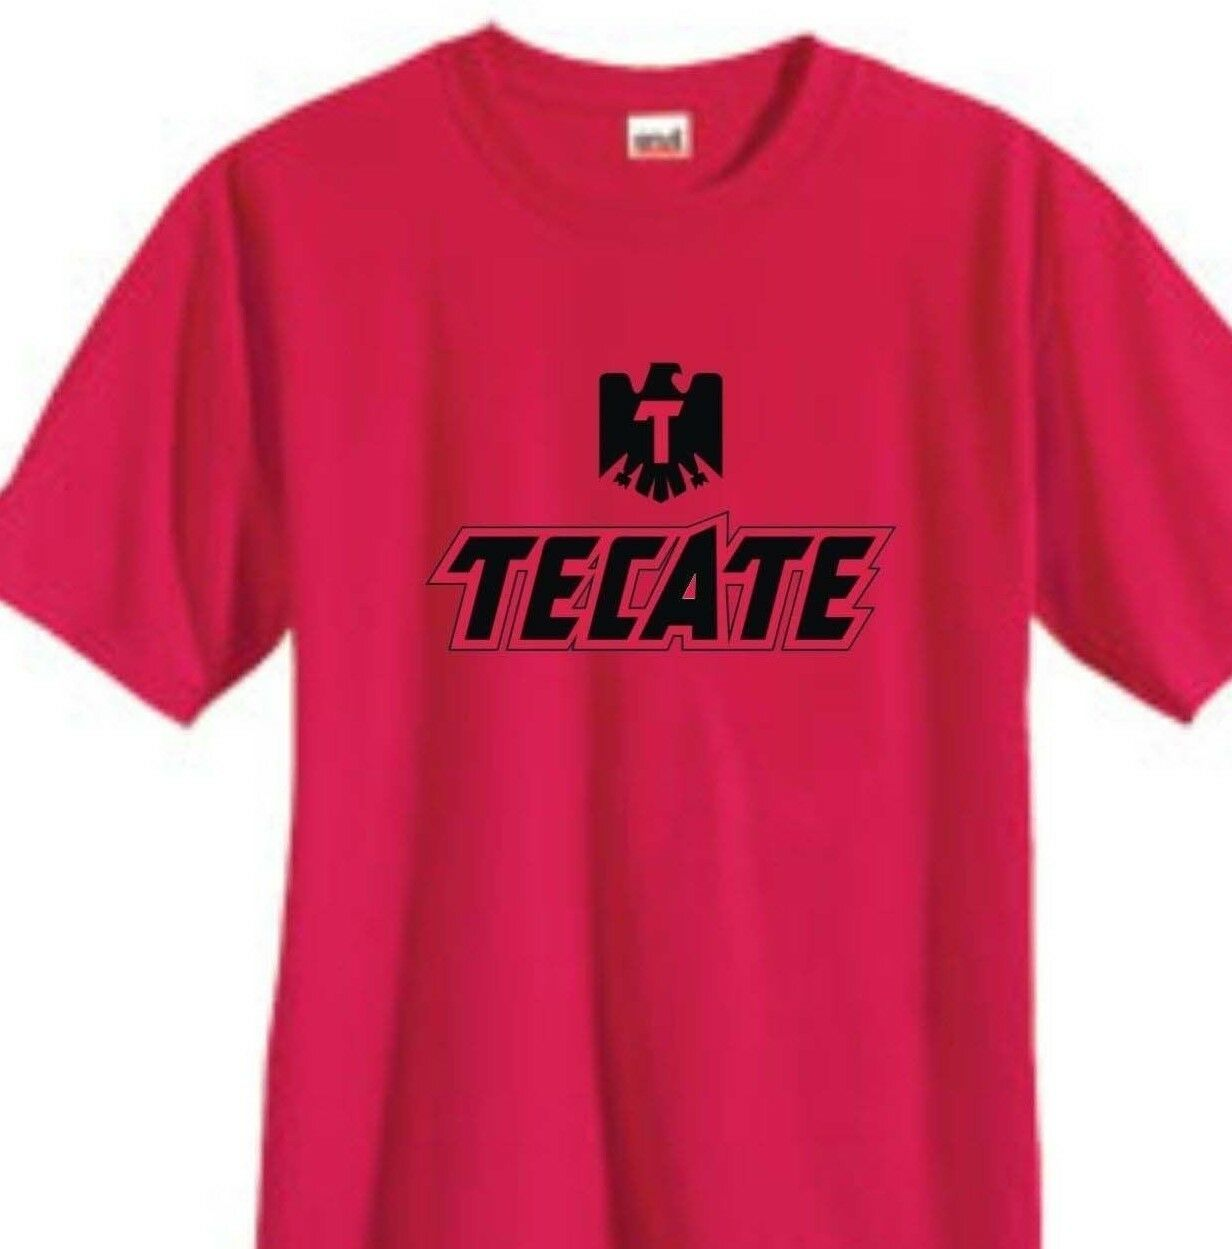 Tecate T-shirt Free Shipping Mexican beer cotton blend graphic printed red tee